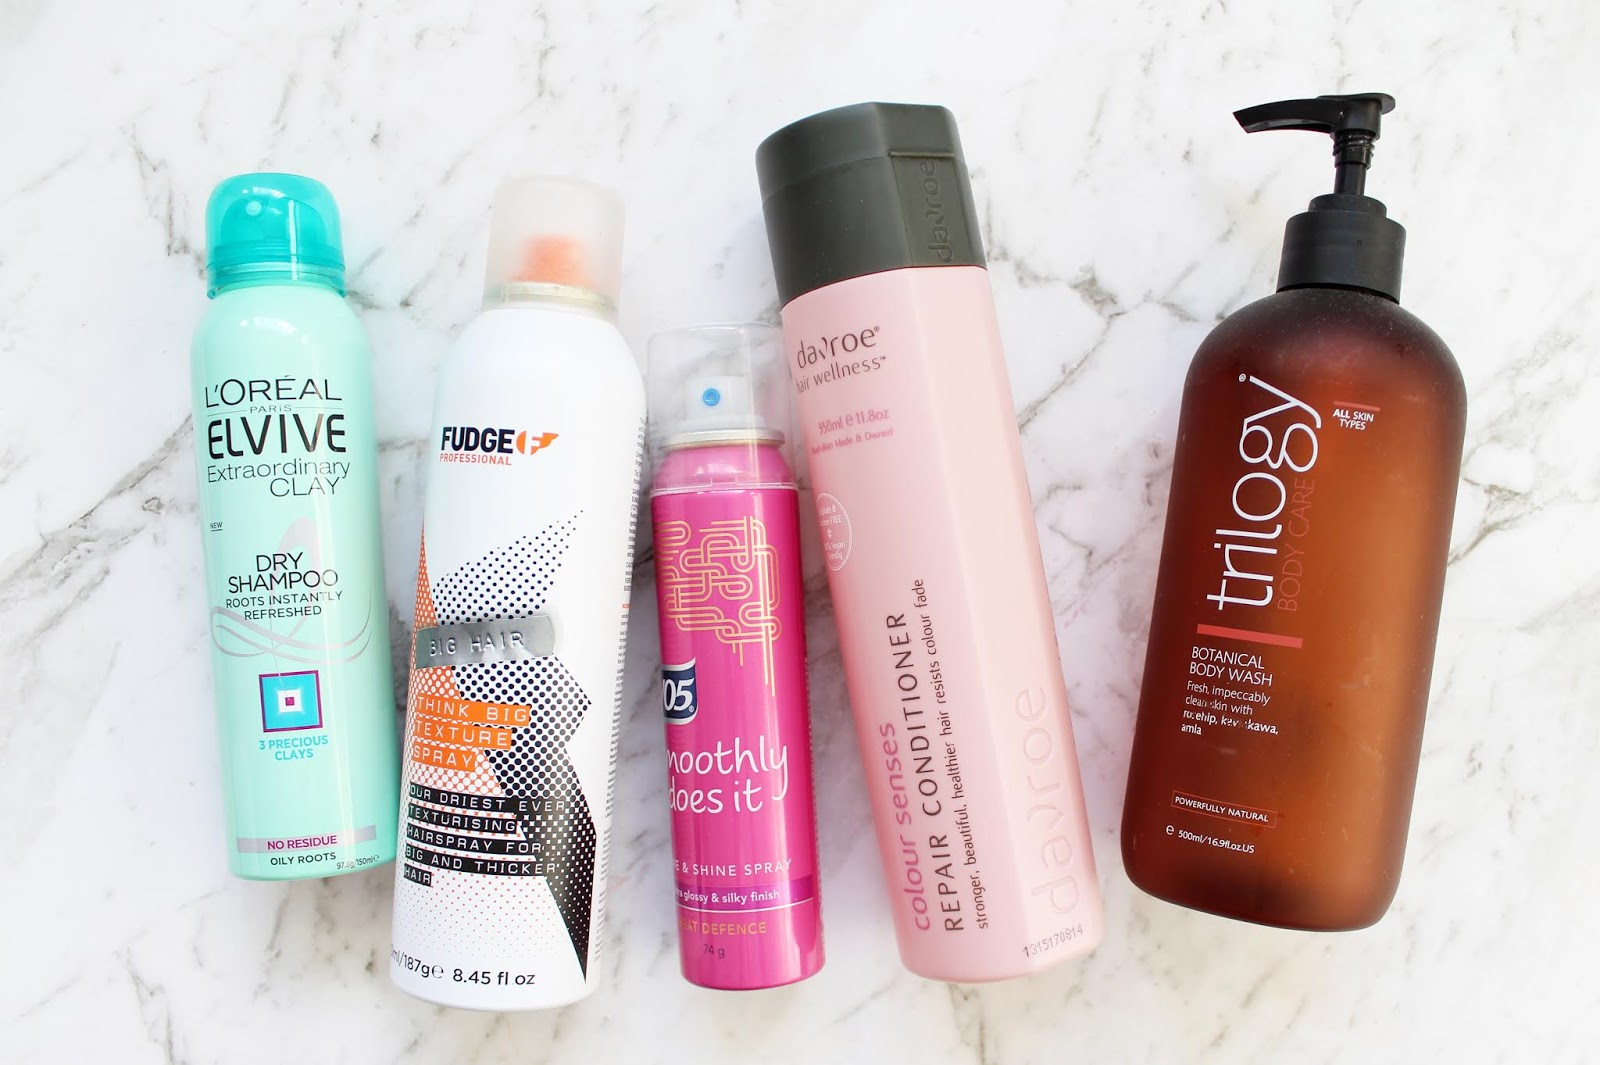 EMPTIES | July '18 - Trilogy, Davroe, Rimmel, Kiehl's, Colourpop, Dermalogica + More - CassandraMyee